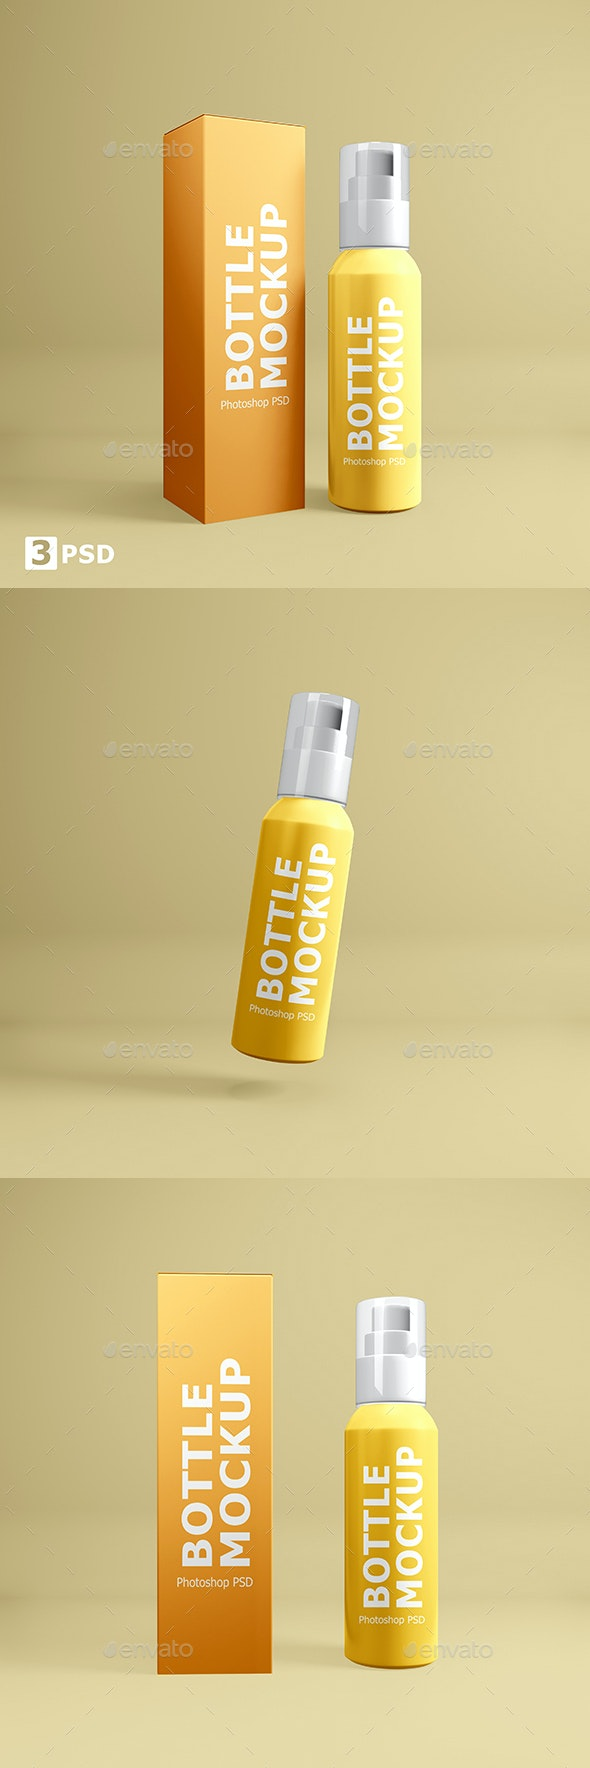 Cosmetic Bottle With Box Mockup - Beauty Packaging